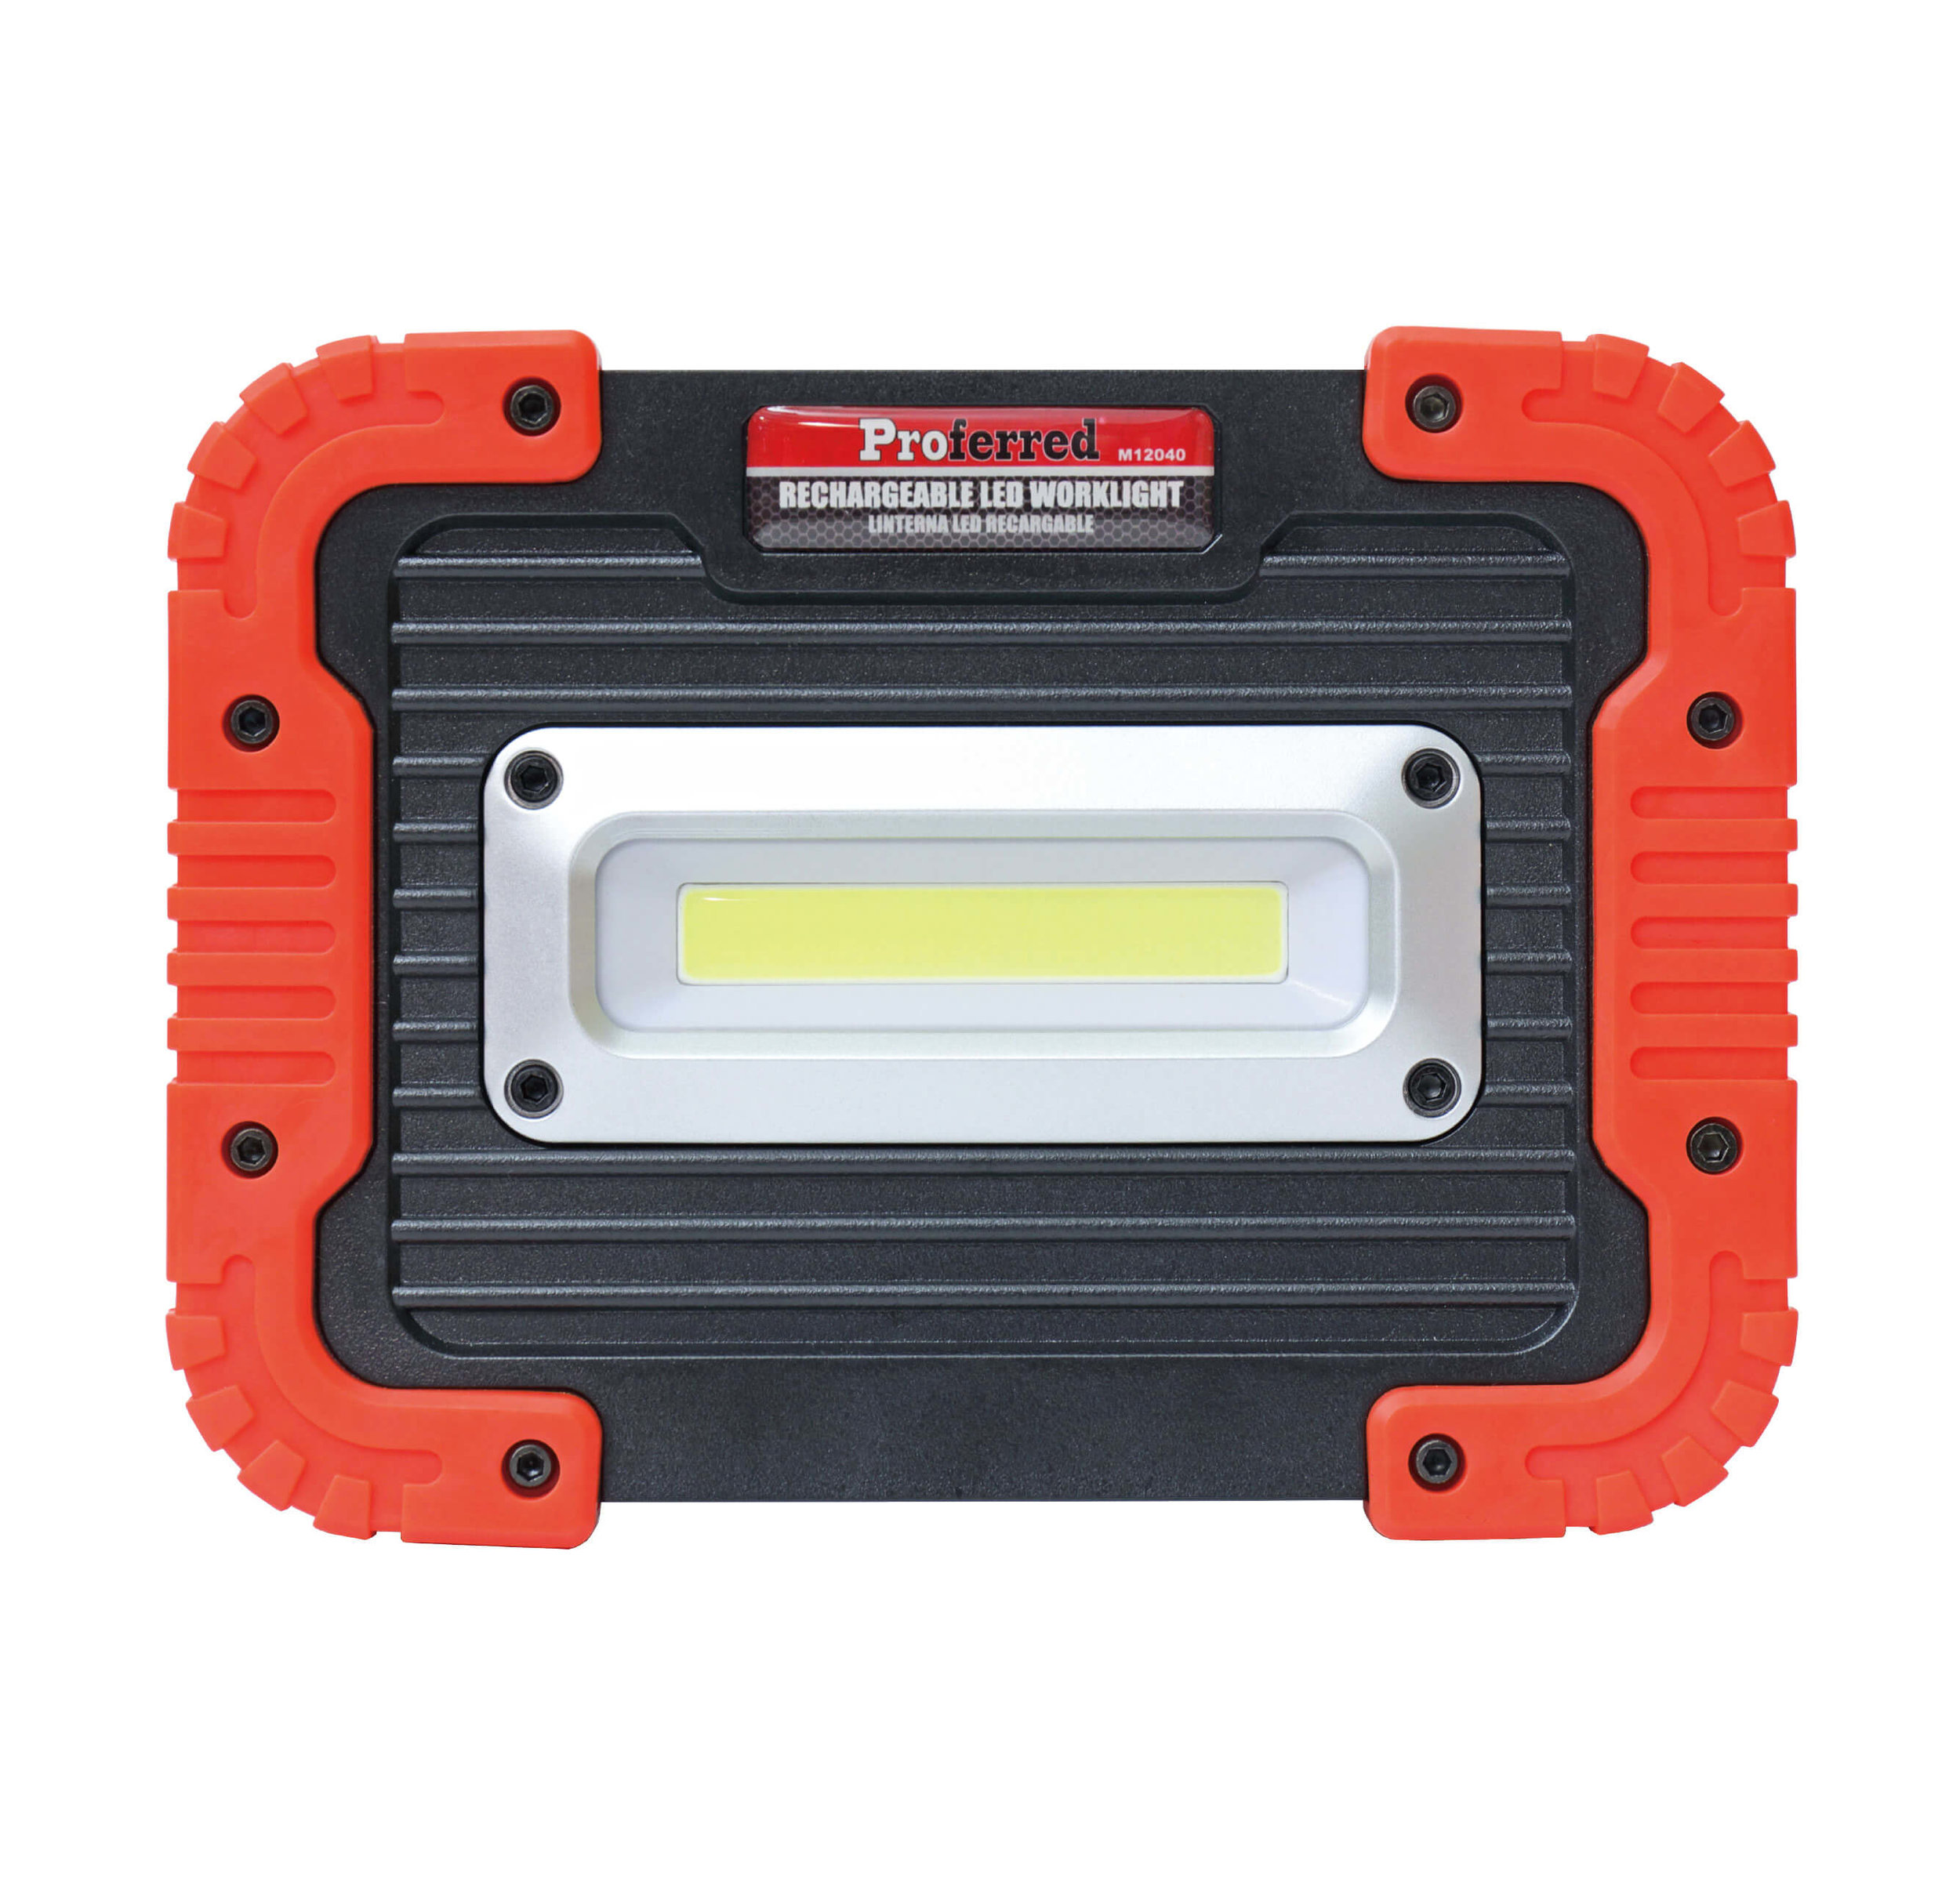 1,000 Lumen Rechargeable Battery (Included)